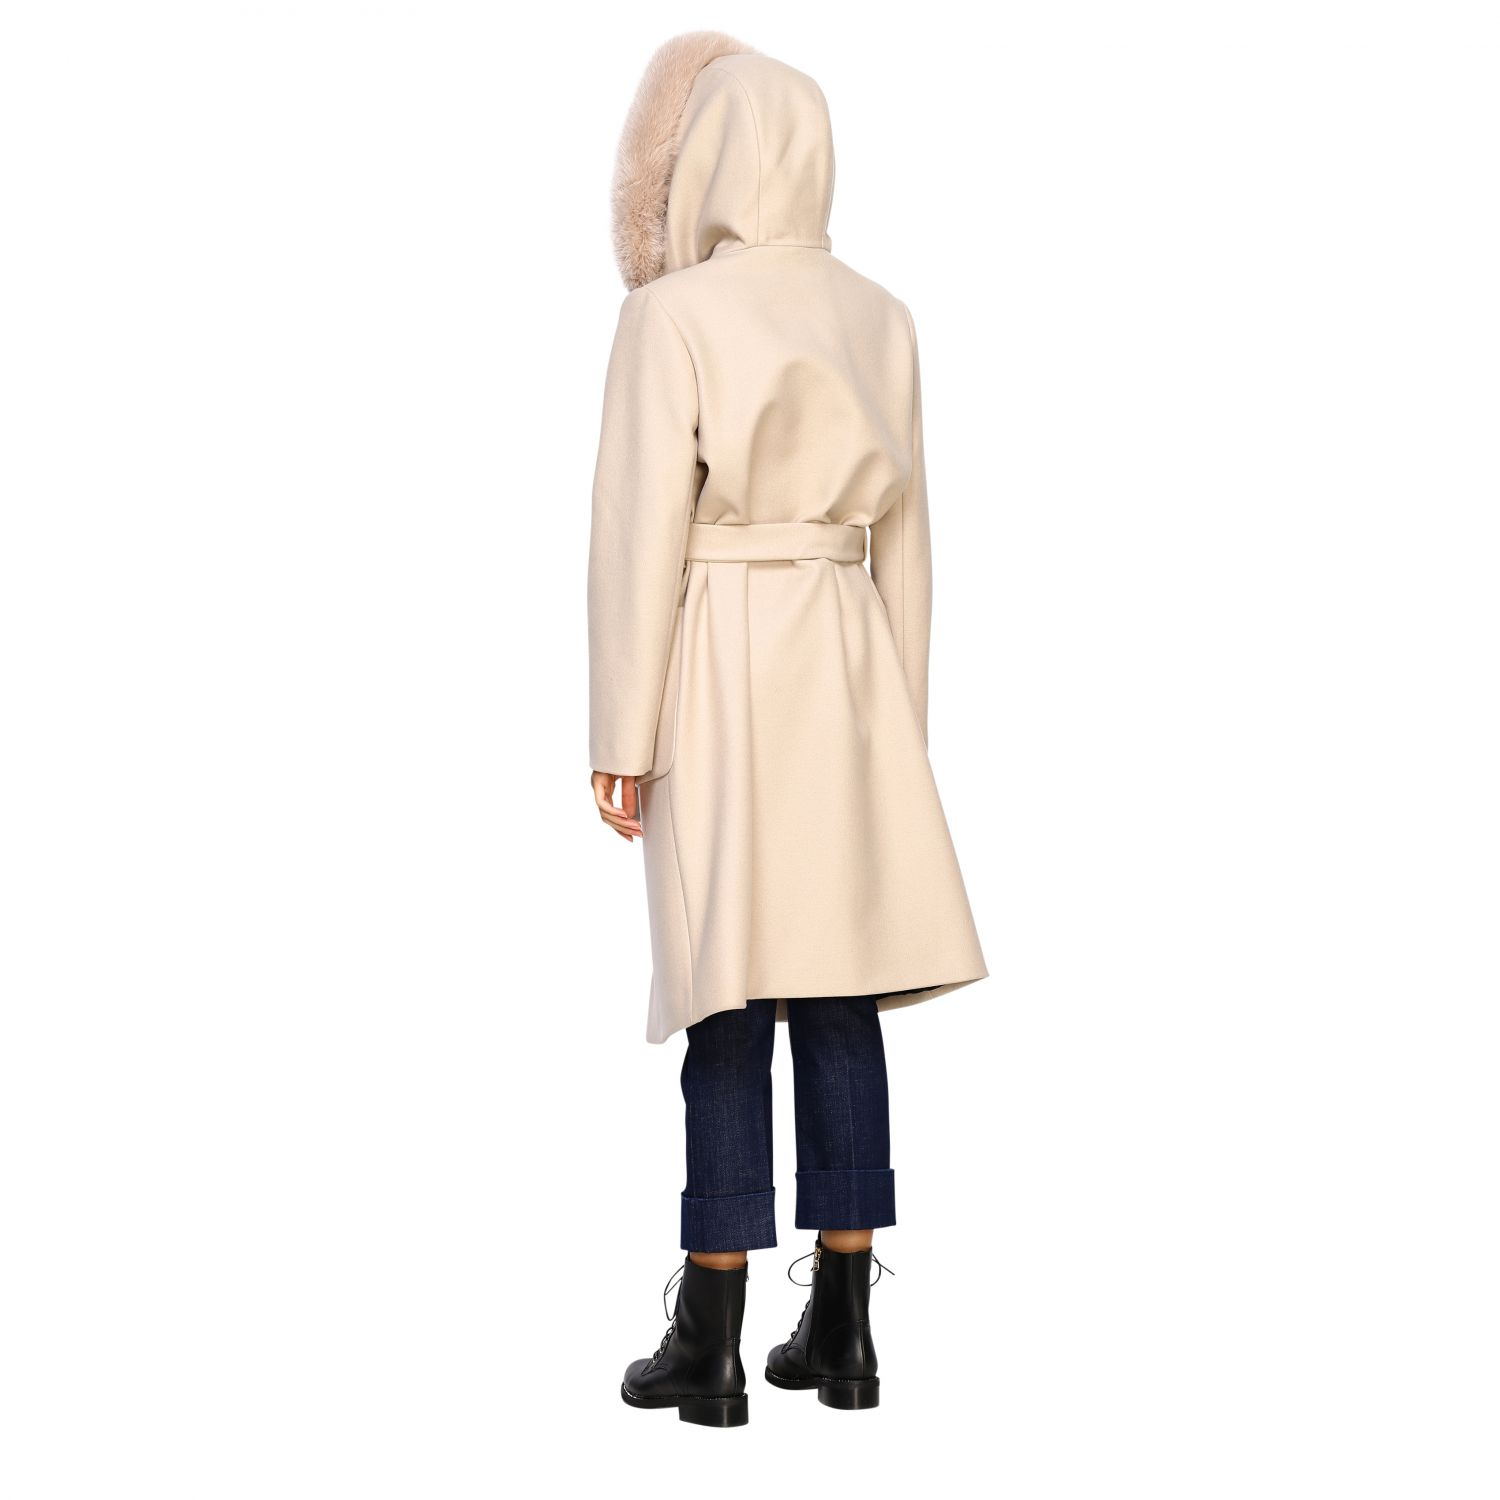 Coat women Fay yellow cream 3